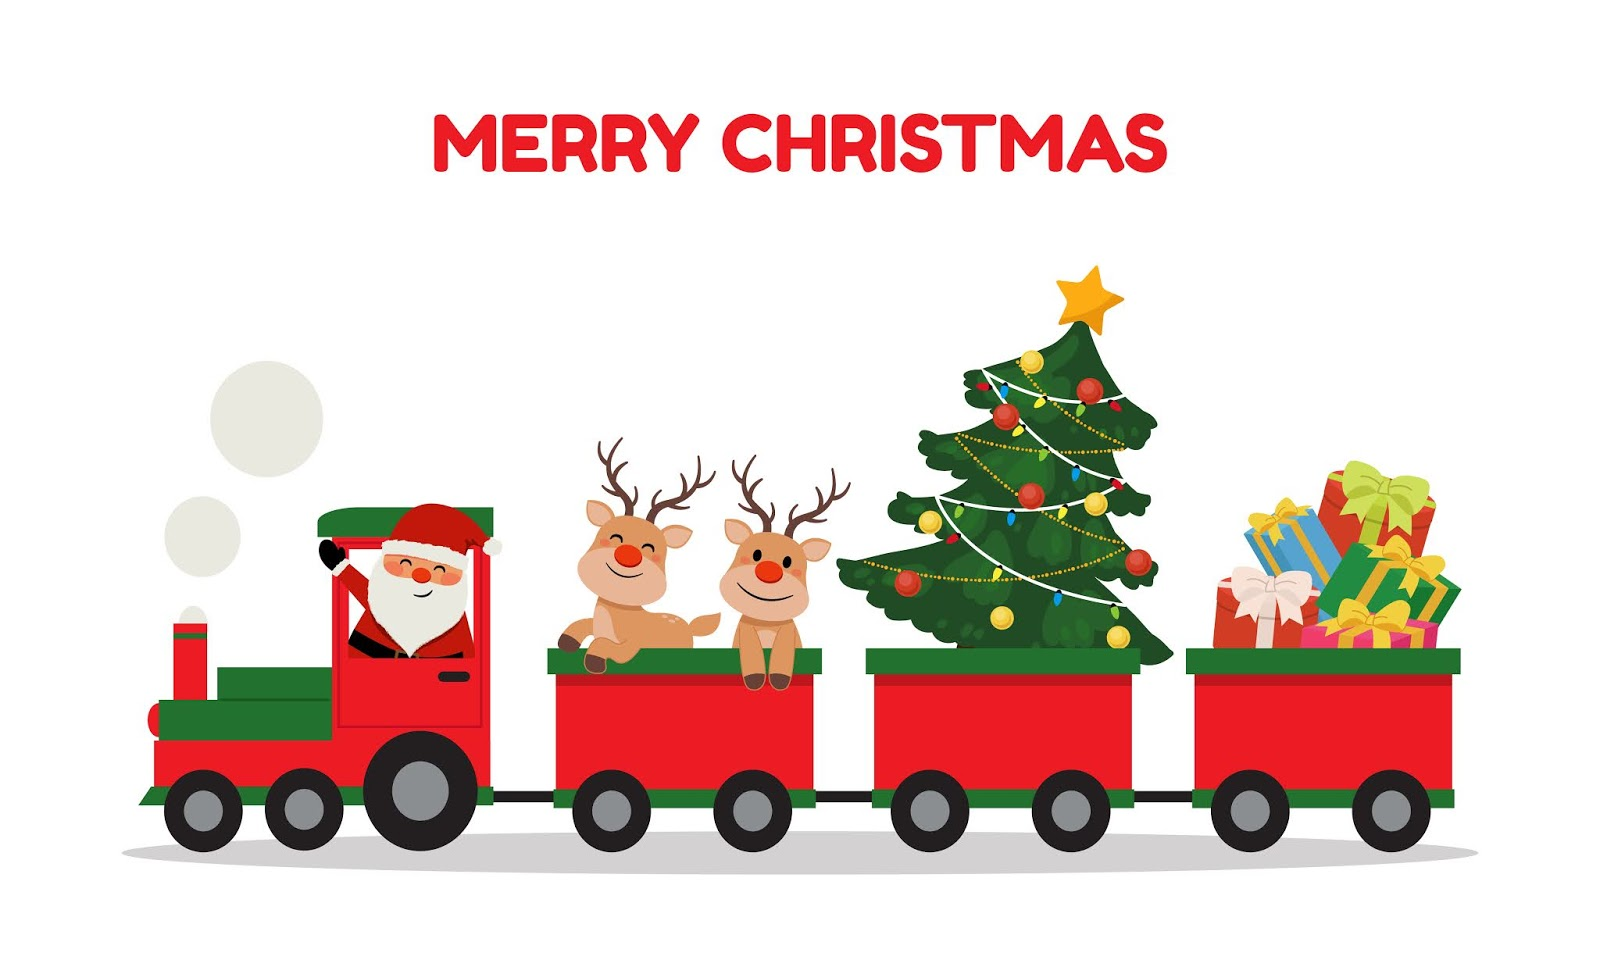 Cute Santa Reindeer Riding Christmas Train Winter Holiday Clip Art Train Carrying Presents Christmas Tree Flat Vector Cartoon Style Isolated Free Download Vector CDR, AI, EPS and PNG Formats